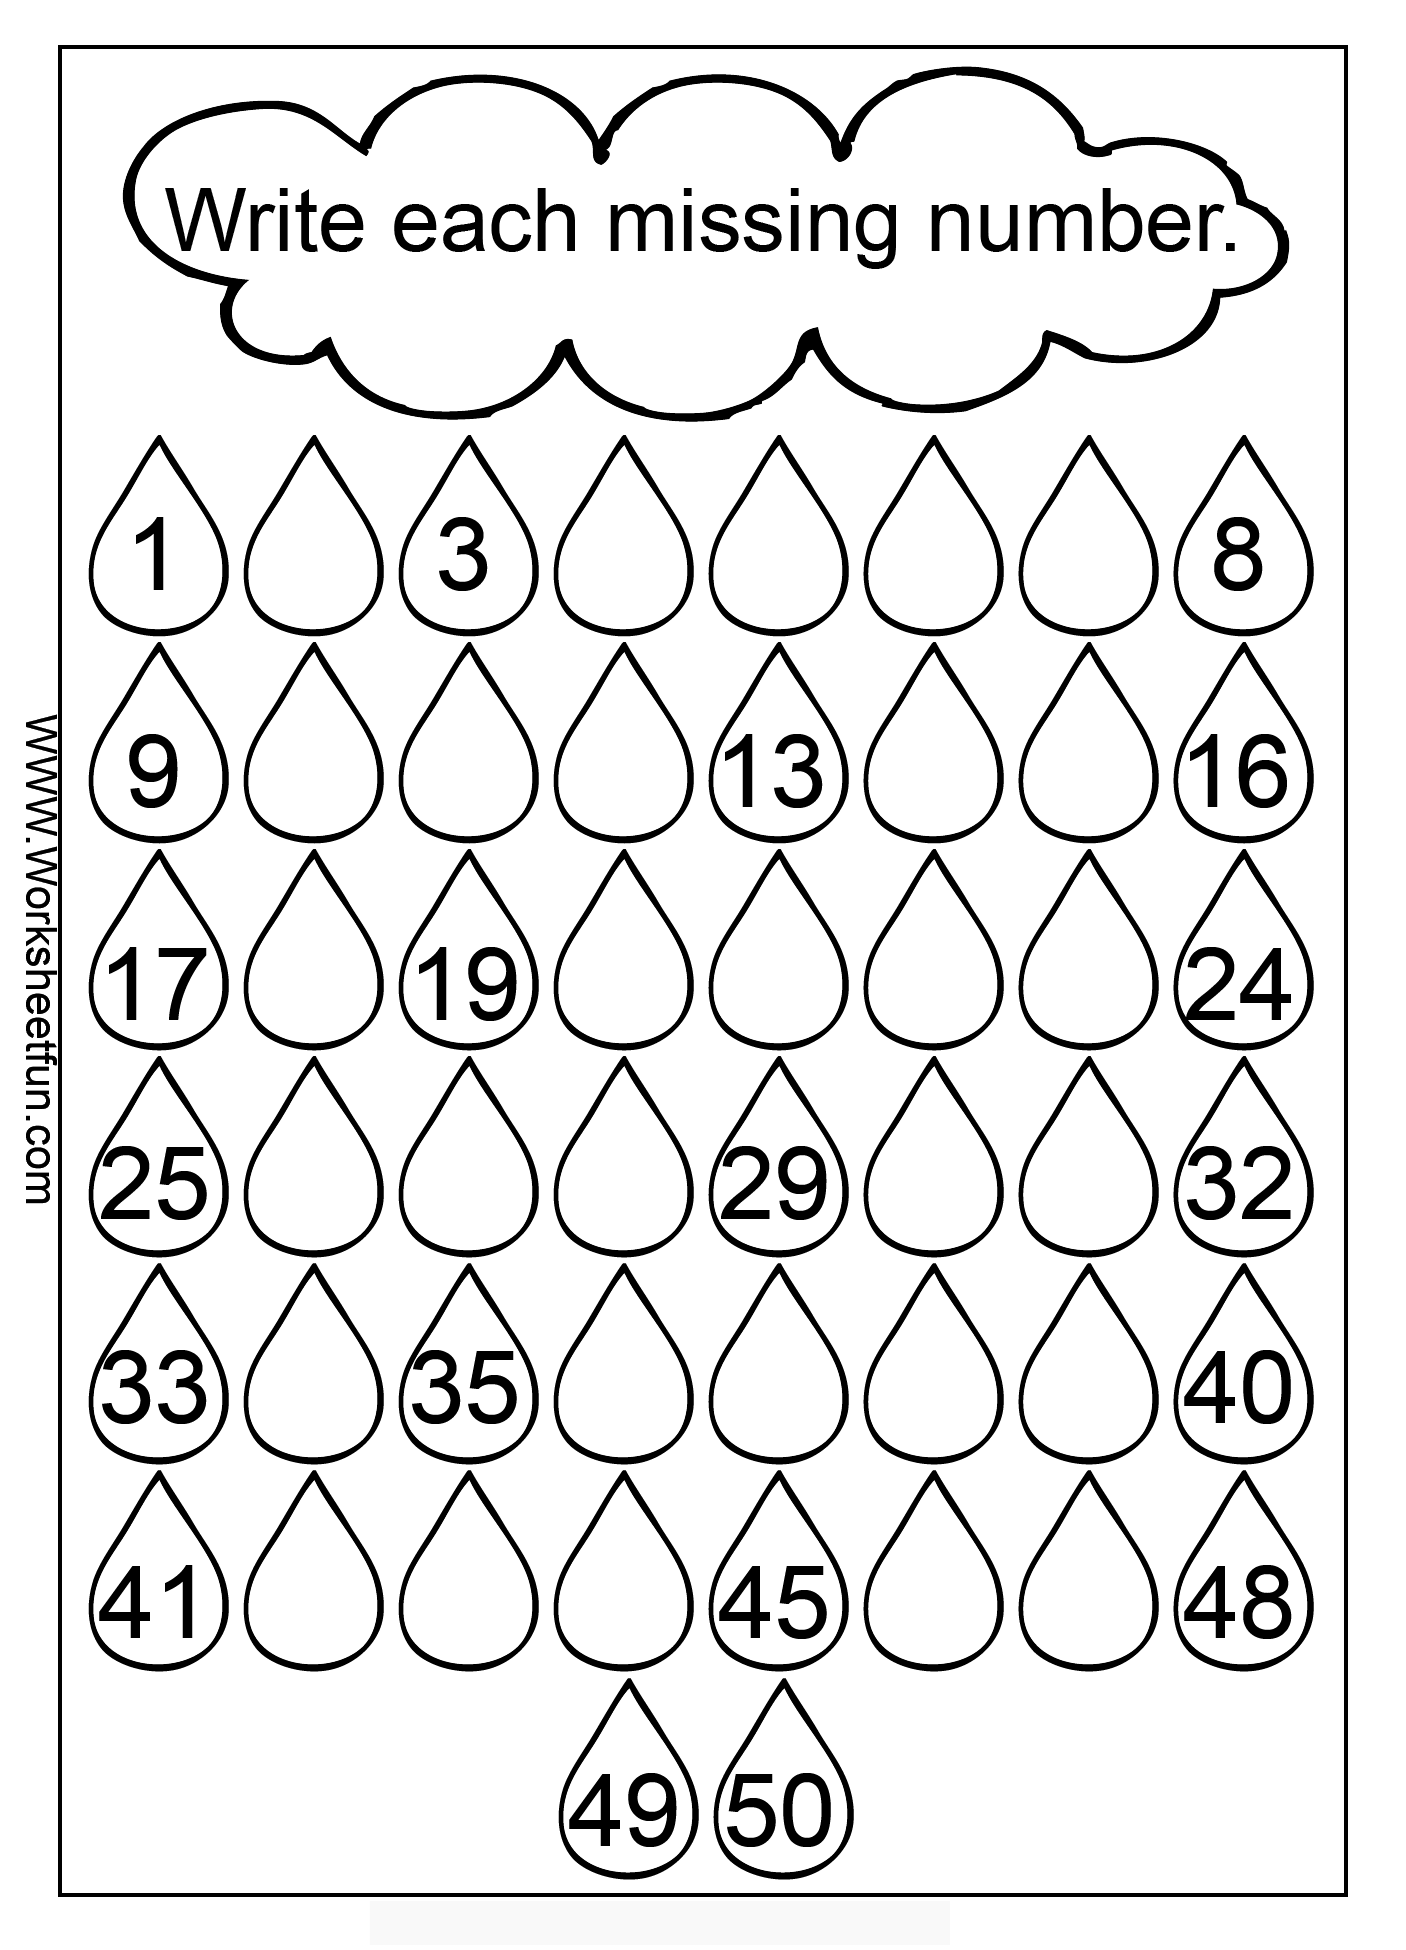 worksheet Missing Number Worksheets For Kindergarten fill in the missing numbers worksheet school mathematics worksheet